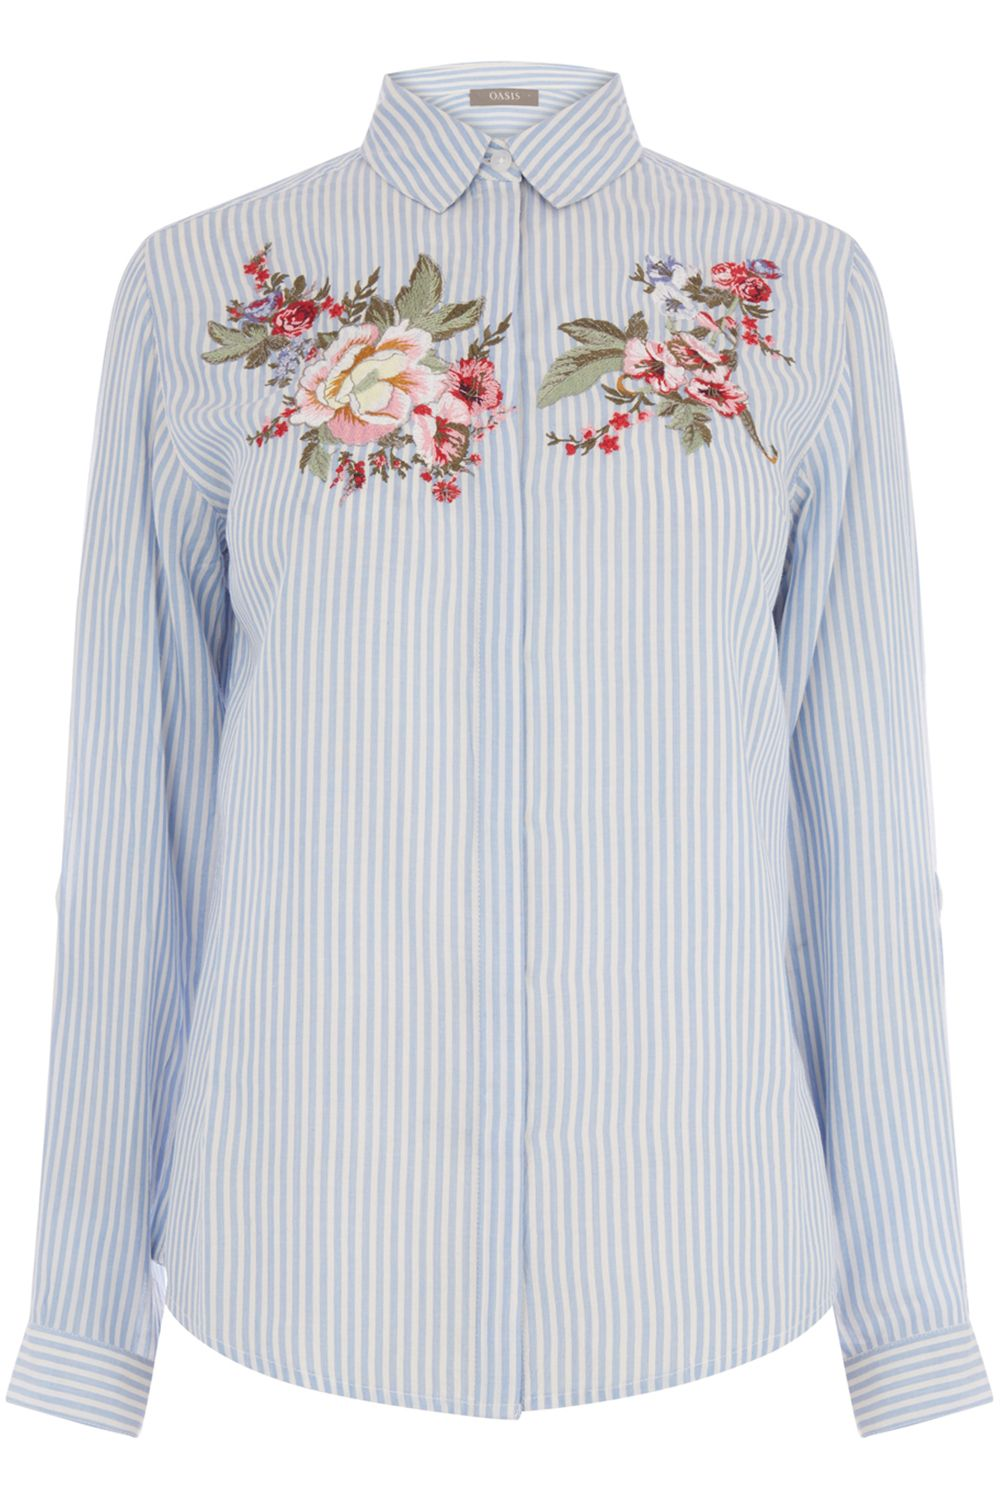 Oasis Chintz Embroidered Shirt, Multi-Coloured